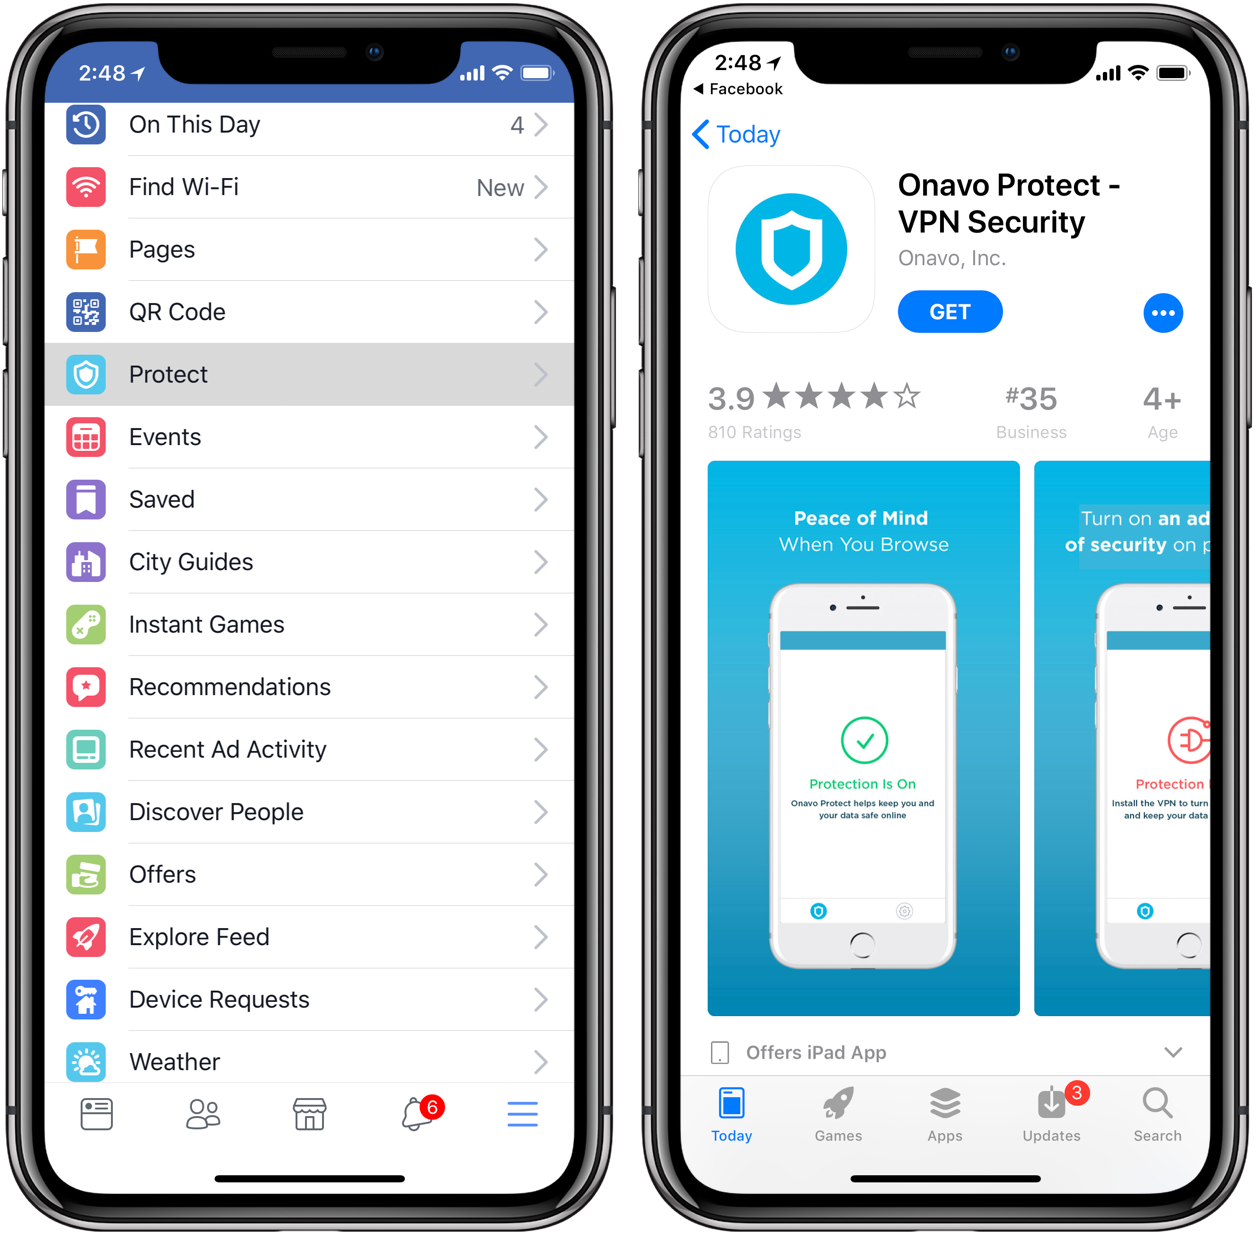 Facebook is pushing its own Onavo VPN service within iOS app